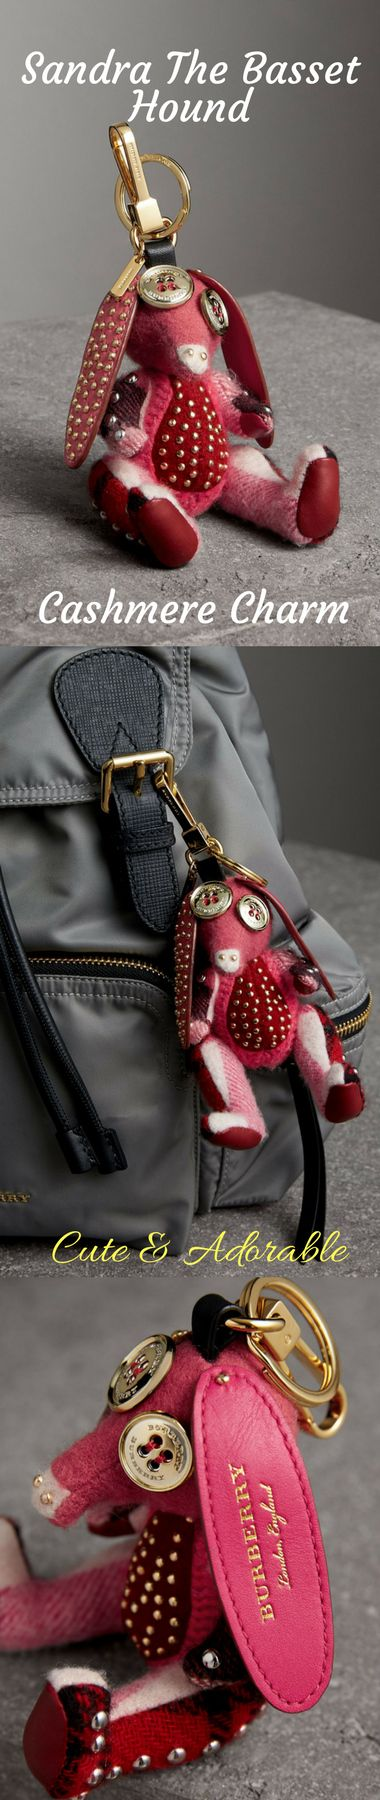 A charm in studded cashmere and leather. The Burberry Clan is a group of charming creatures lost and found in our design studio. Playful mismatches of fabrics and fastenings are stitched together to create the whimsical new characters. Attach to a day bag for an animated accent. #burberry #love #charms #handbagAccessories #keychains #luckyCharm #realtorGifts #giftIdeas #giftsForHer #birthdayGifts #ChristmasGifts #cute #fab #ad